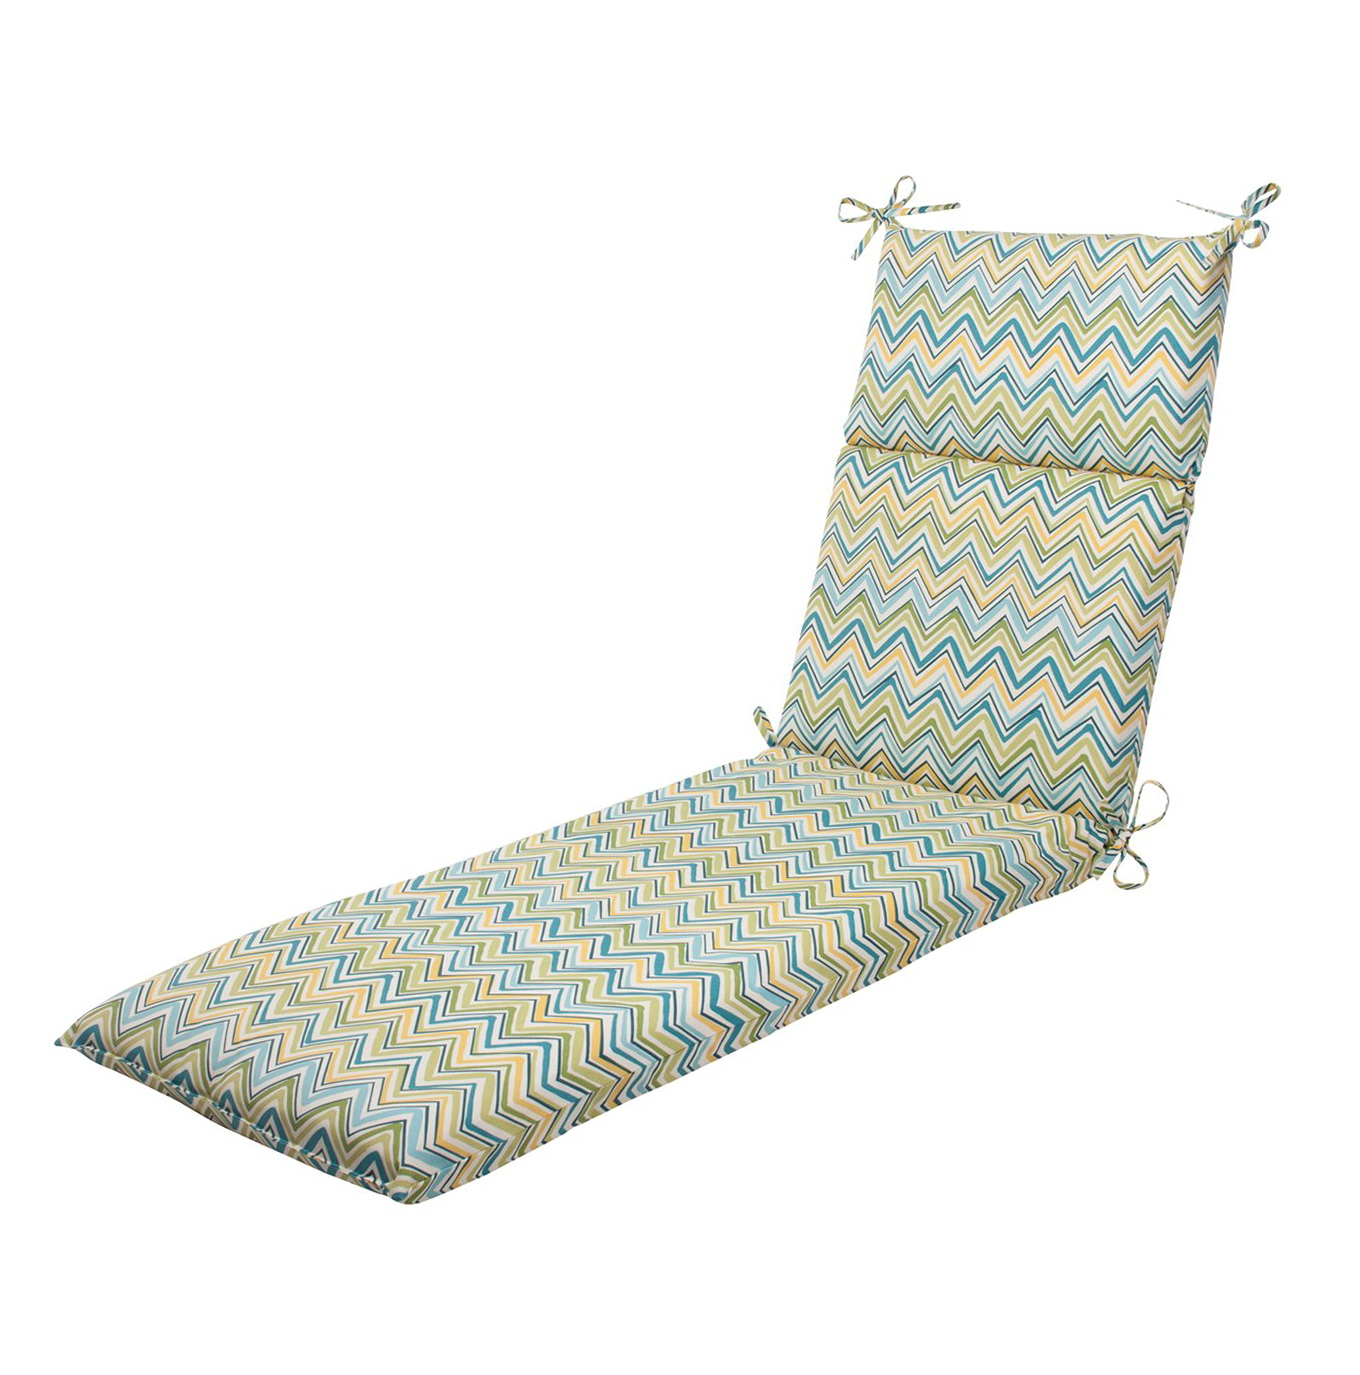 Chaise Lounge Outdoor Cushions Target